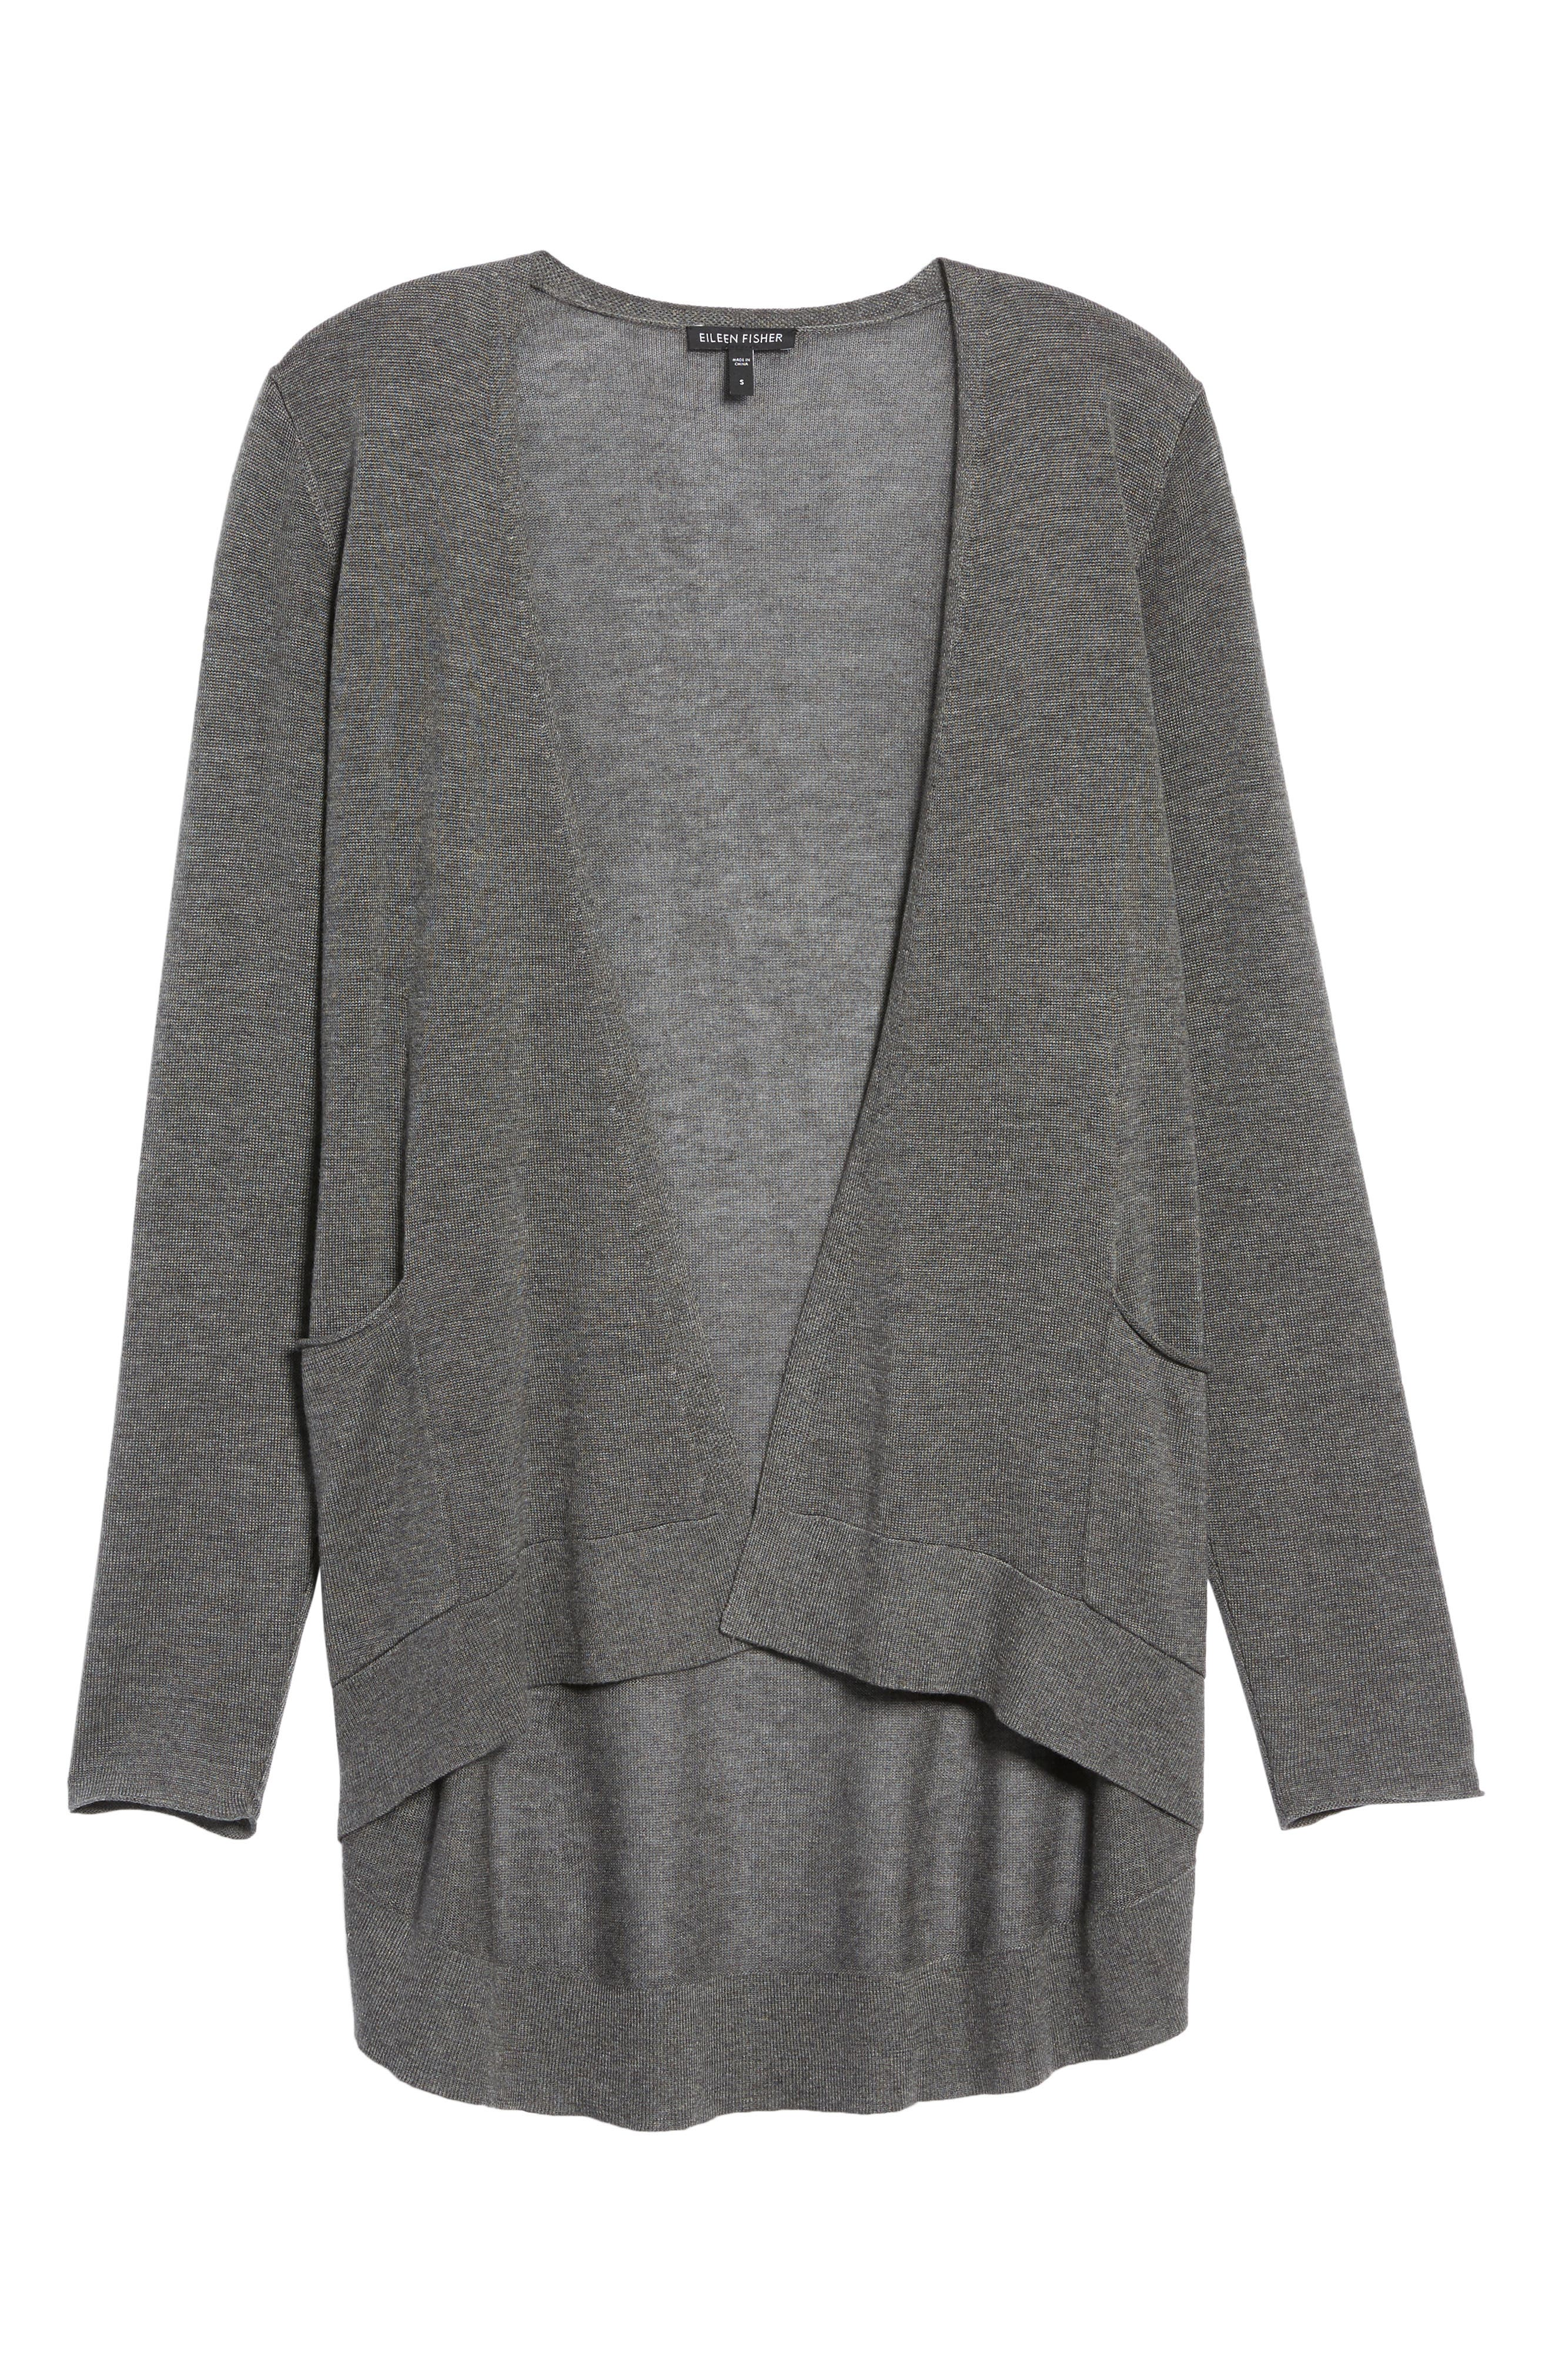 Slouchy Tencel<sup>®</sup> Blend Cardigan,                             Alternate thumbnail 6, color,                             Ash